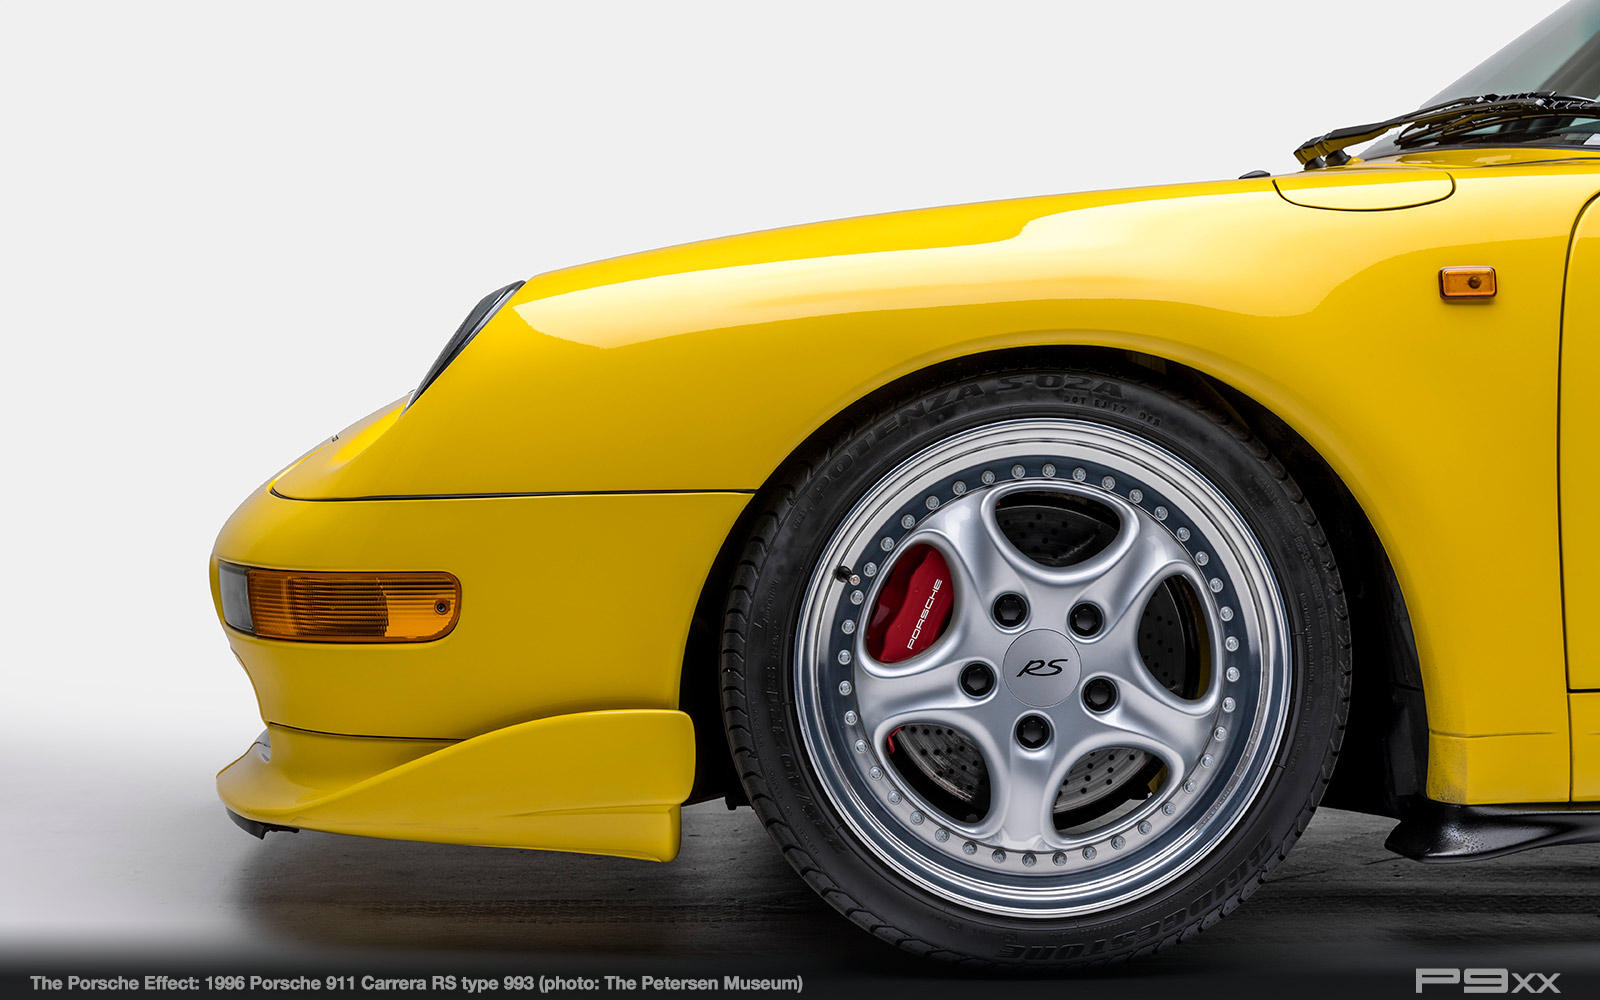 1996-911-Carrera-RS-993-Petersen-Automotive-Museum-The-Porsche-Effect293